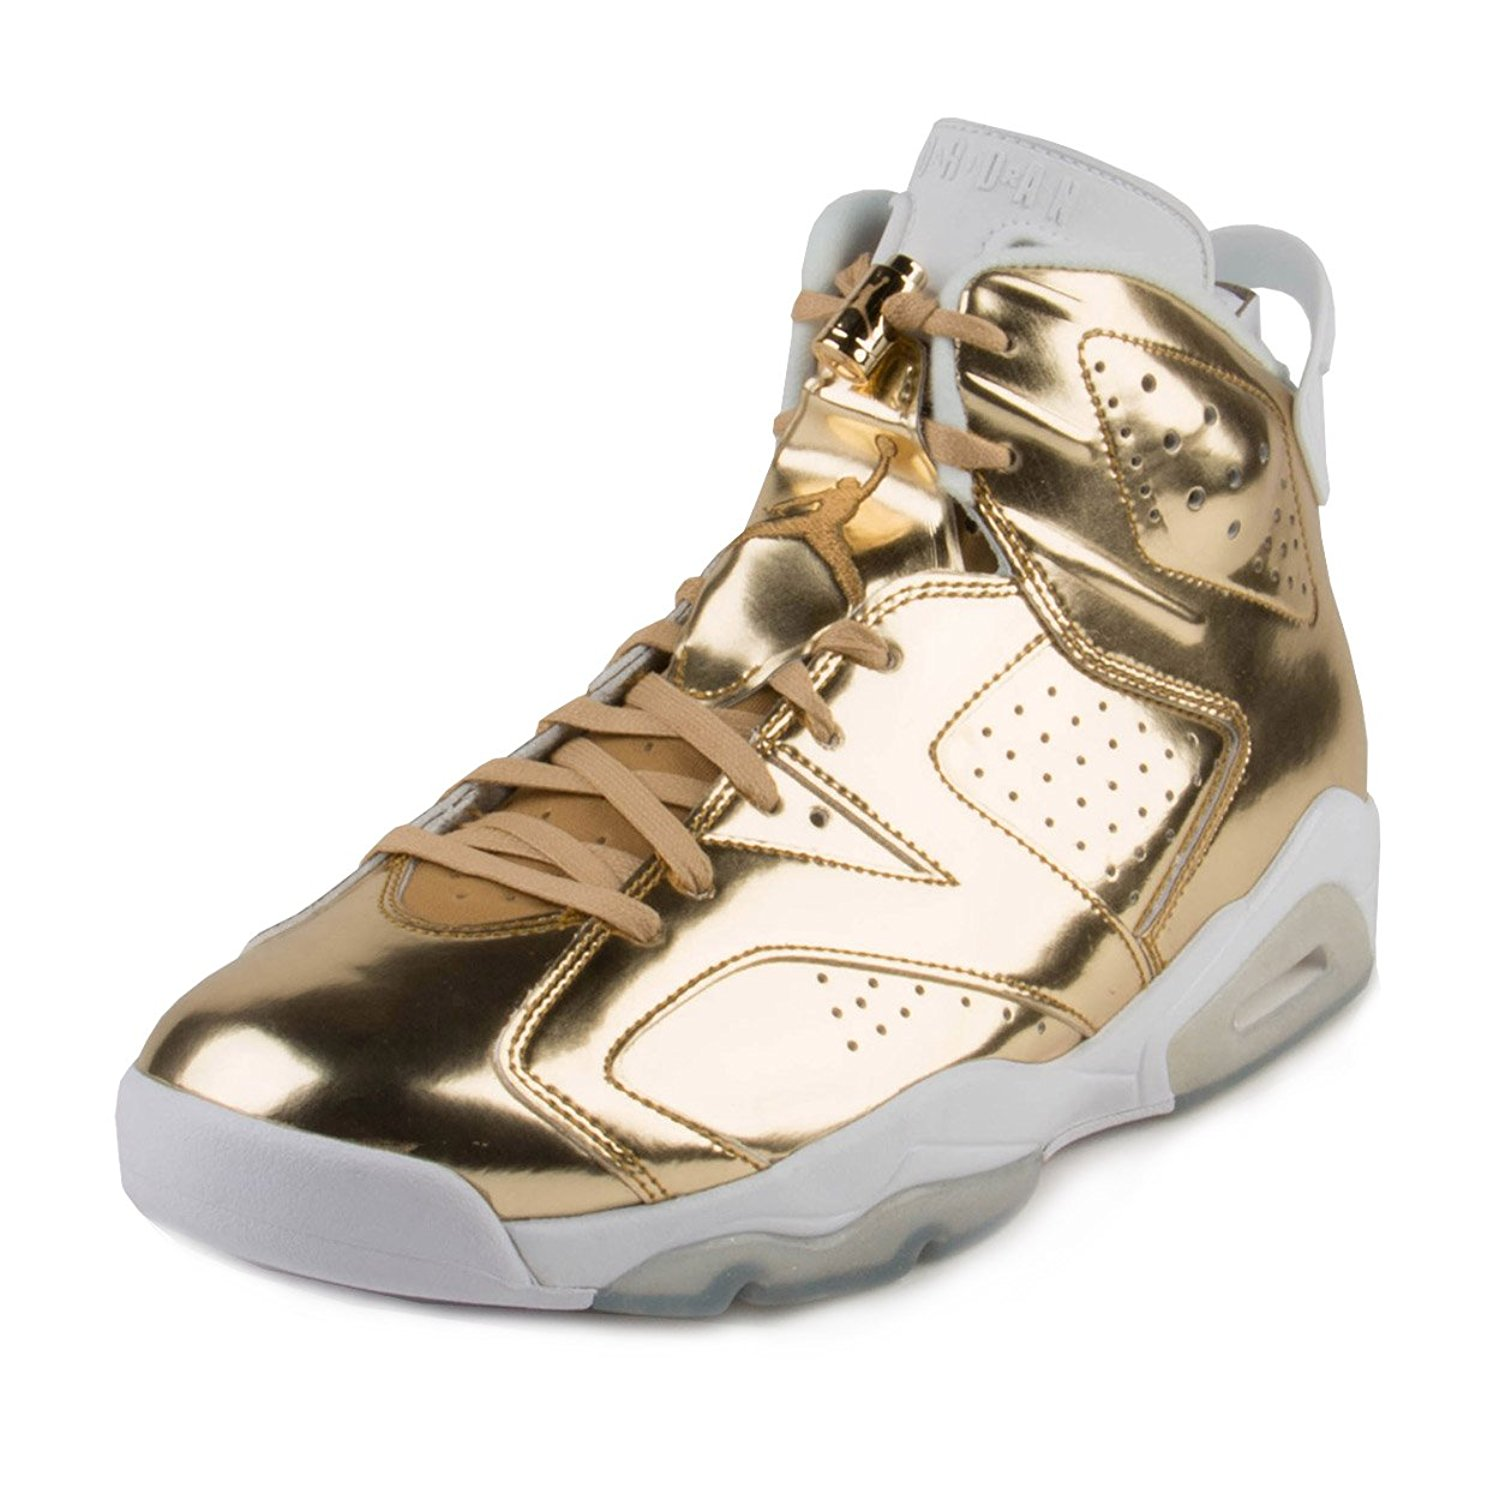 Nike Mens Air Jordan 6 Retro Pinnacle Metallic Gold/White Leather